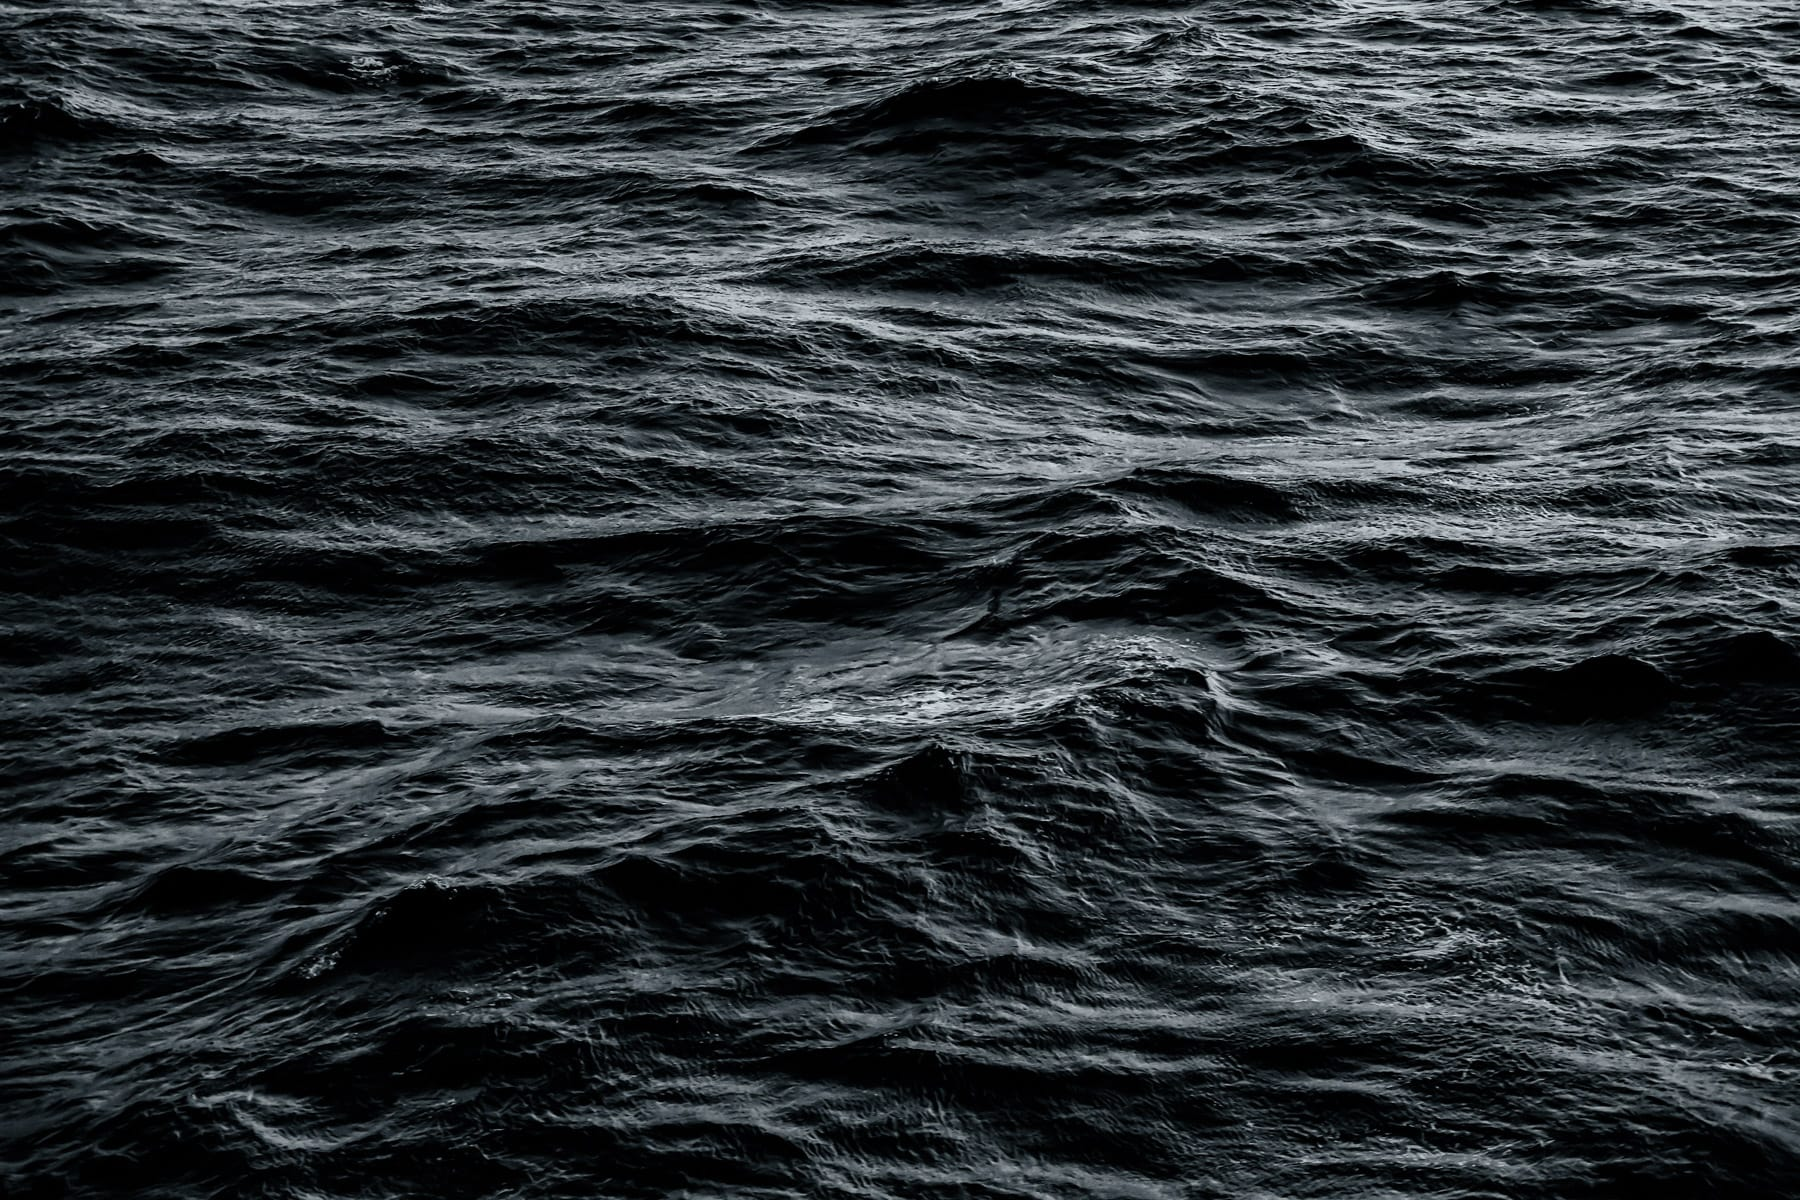 The ever-changing surface of the Gulf of Mexico.